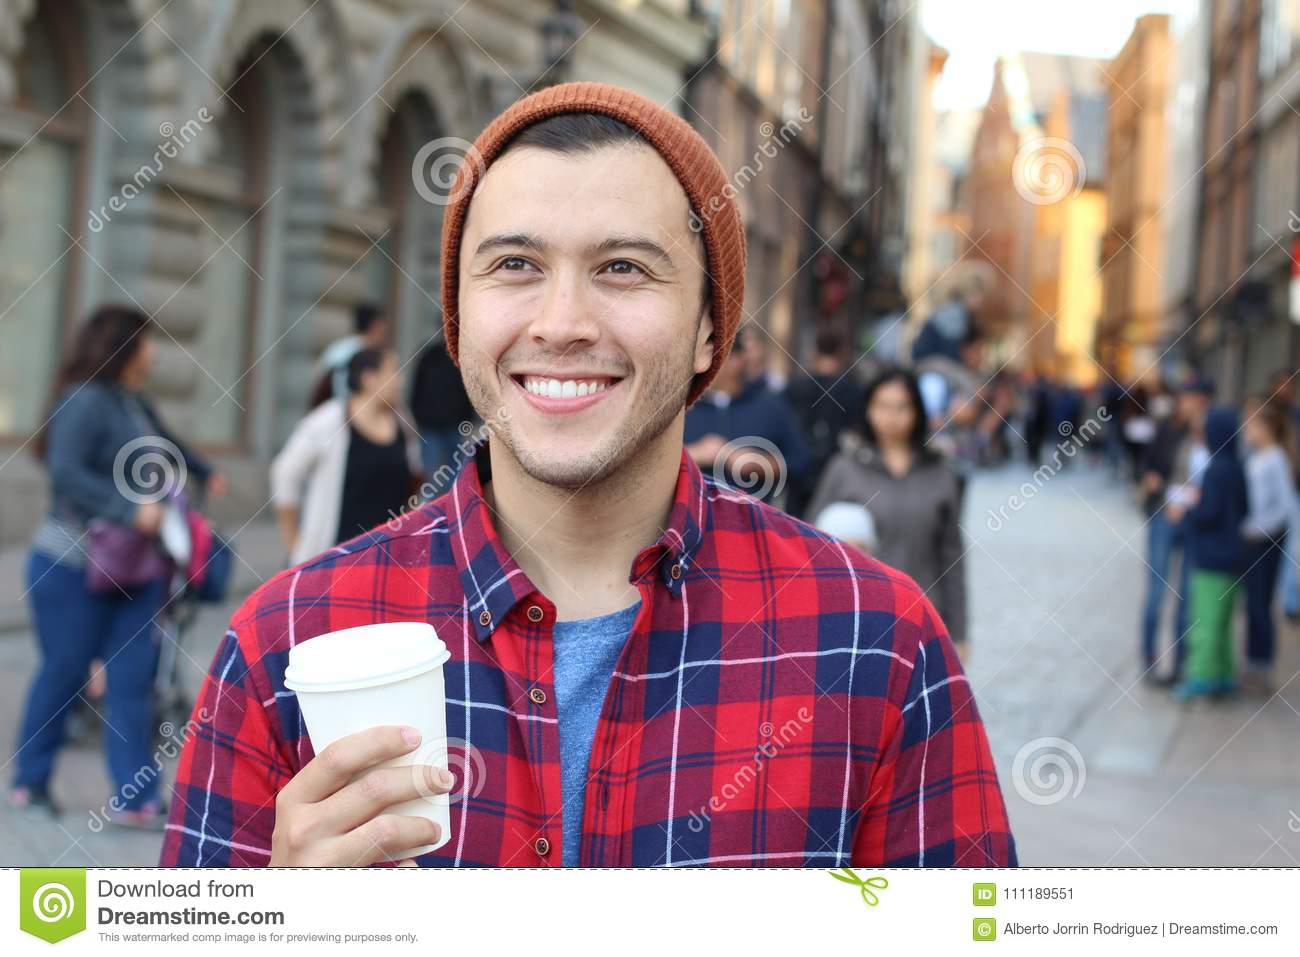 Ethnic male holding a disposable cup of coffee in the a crowded city street